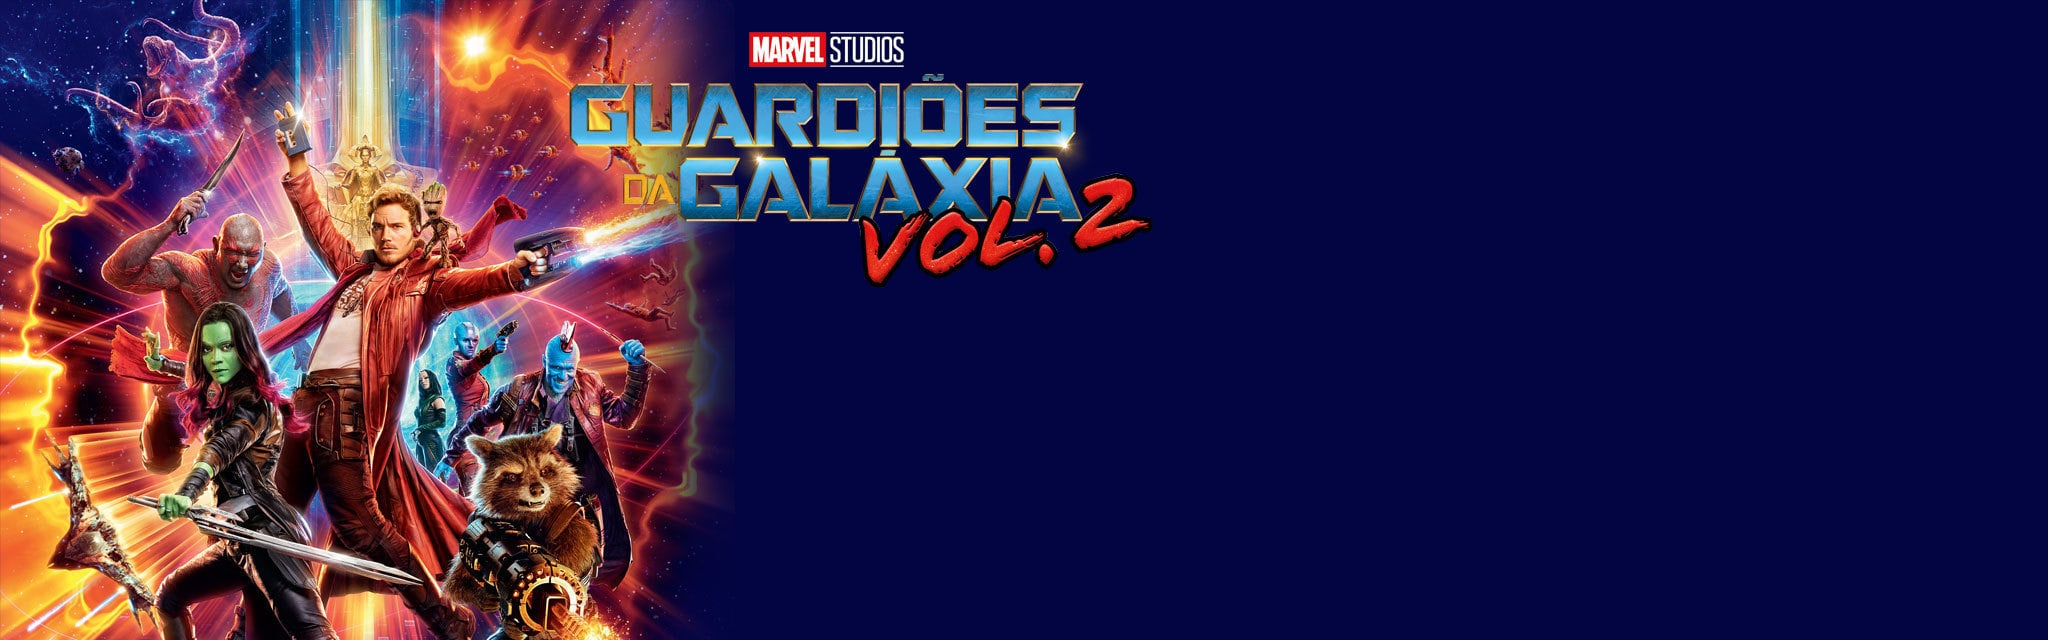 FW - GOTG Vol2 (Hero - Movies)